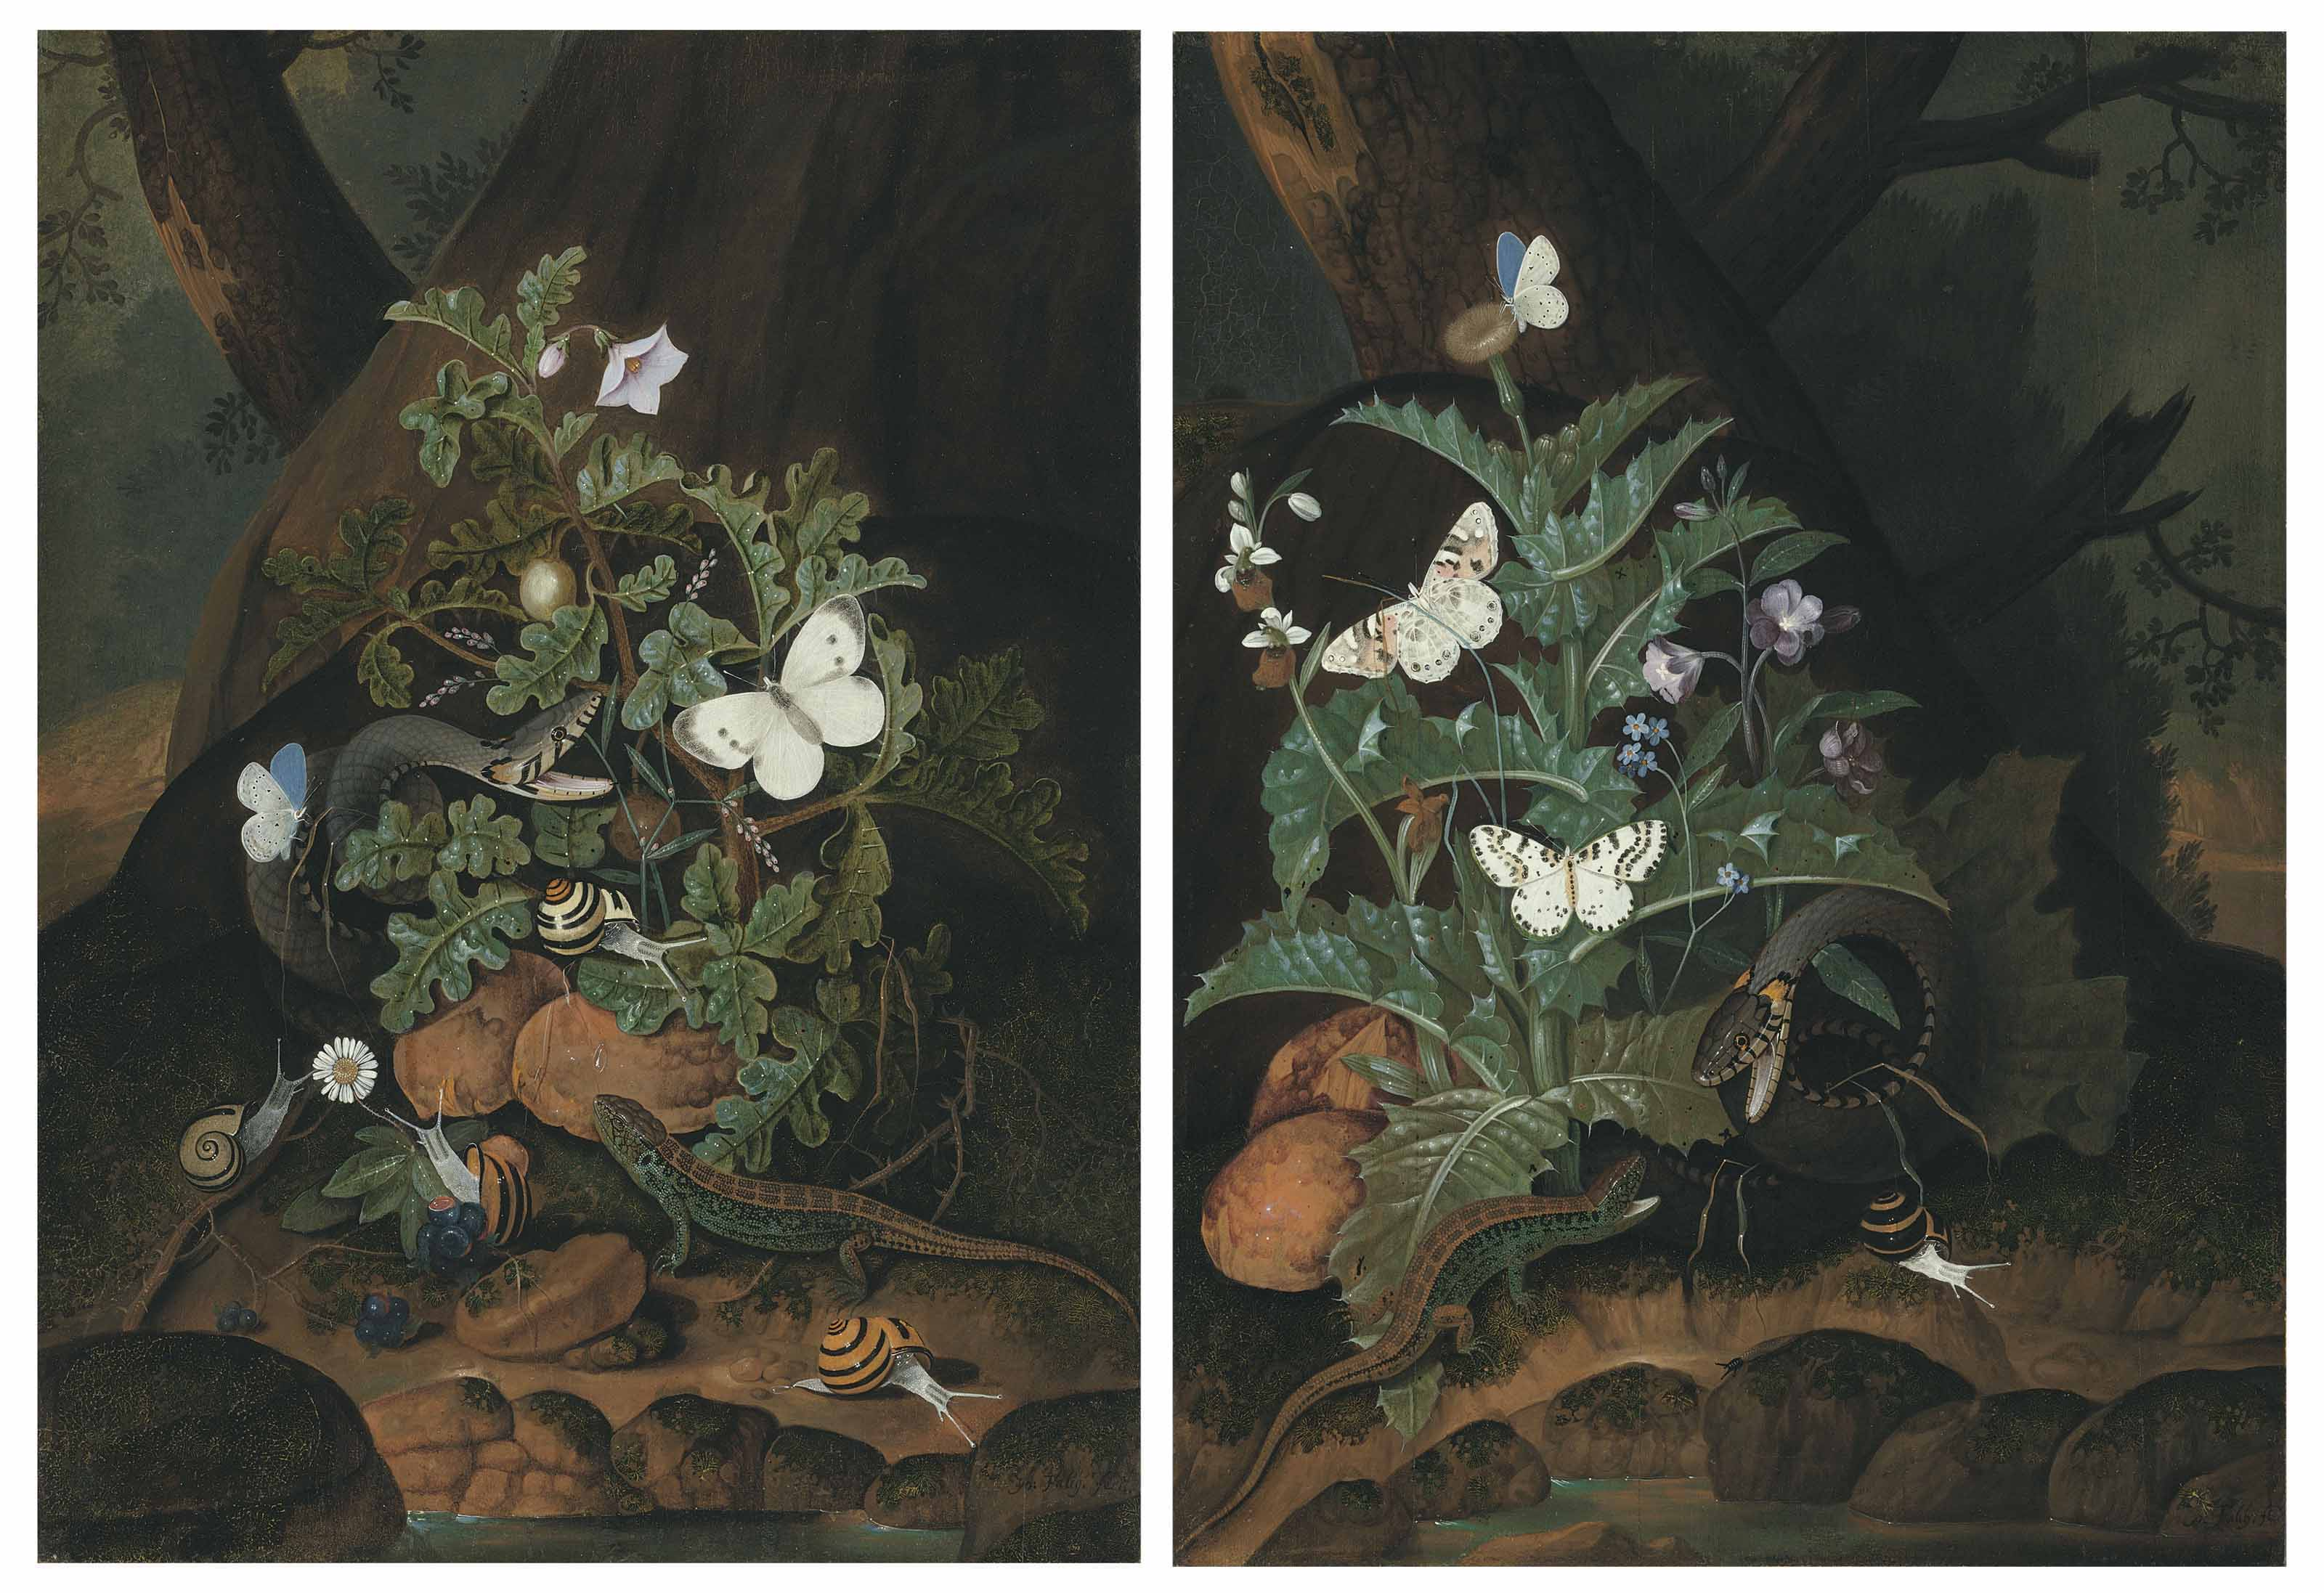 Two forest floors with a snake, lizard, butterflies and snails amongst weeds on a riverbank